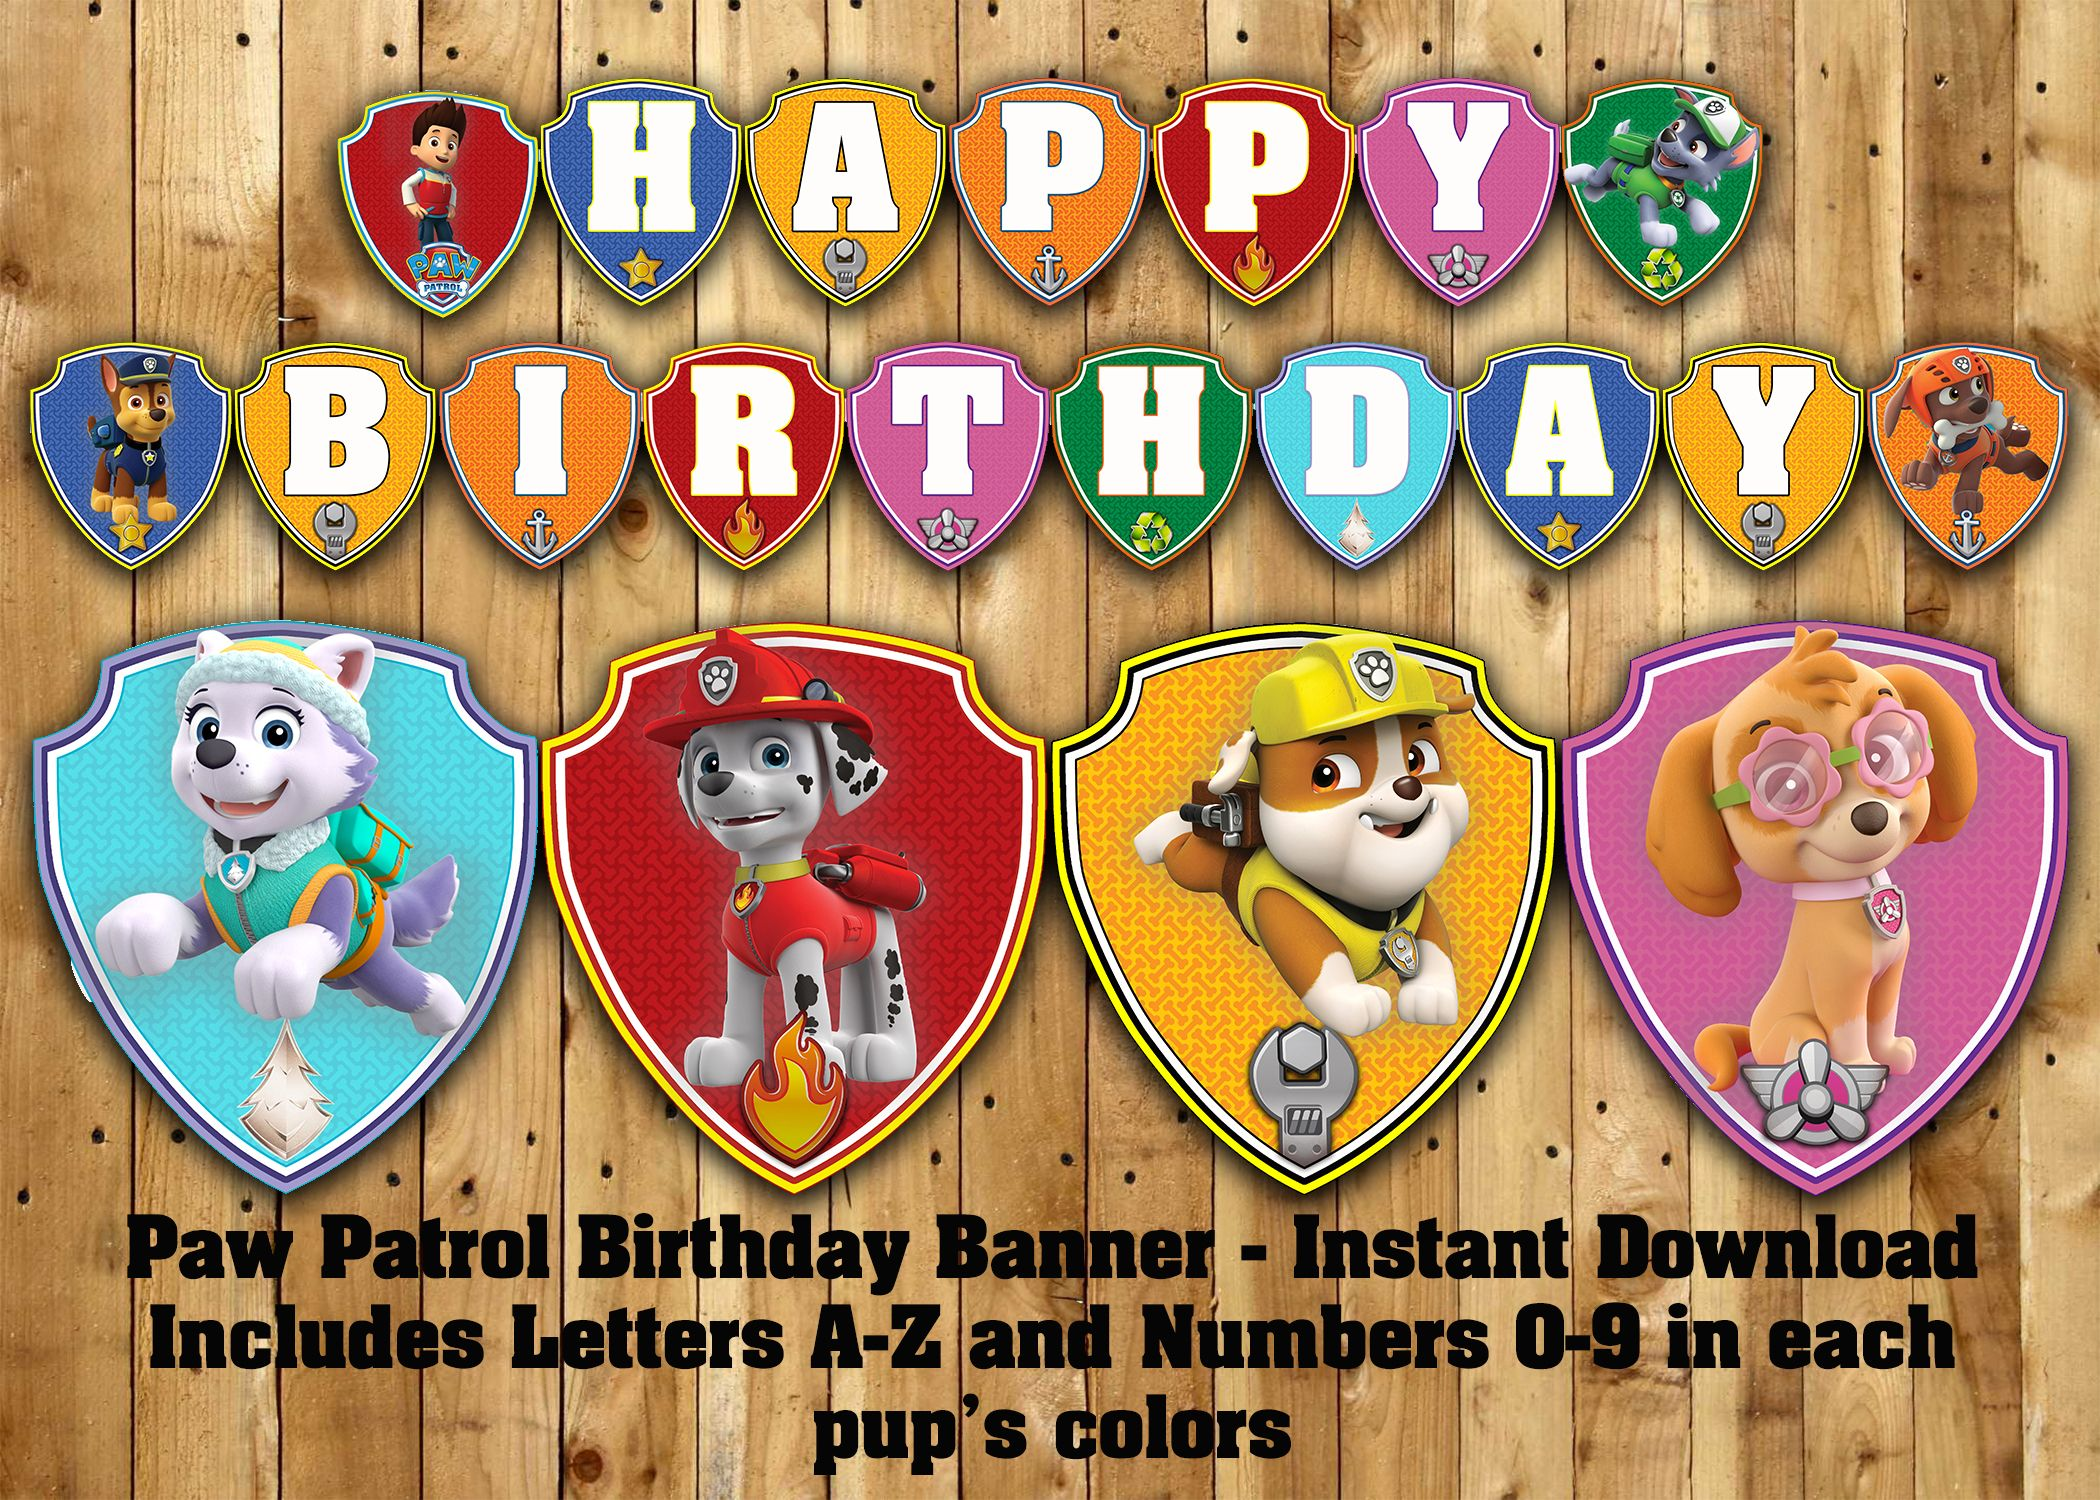 This Paw Patrol Themed Birthday Banner Is Available As An Instant